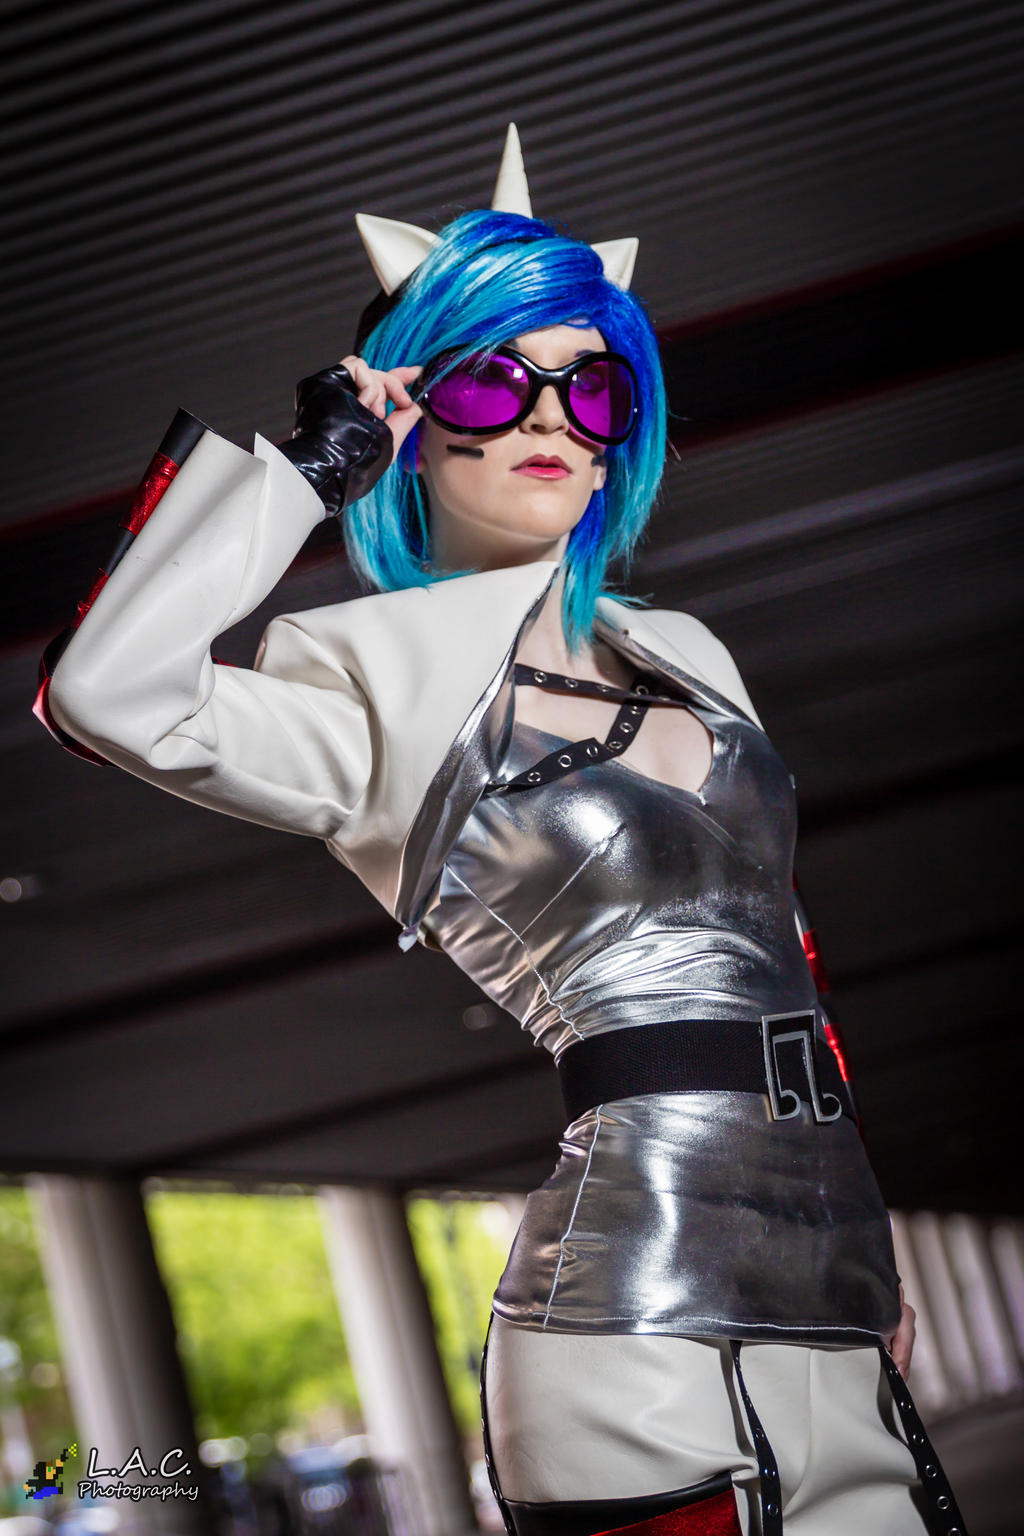 Cool Vinyl Scratch From Space By Scratch896 On Deviantart